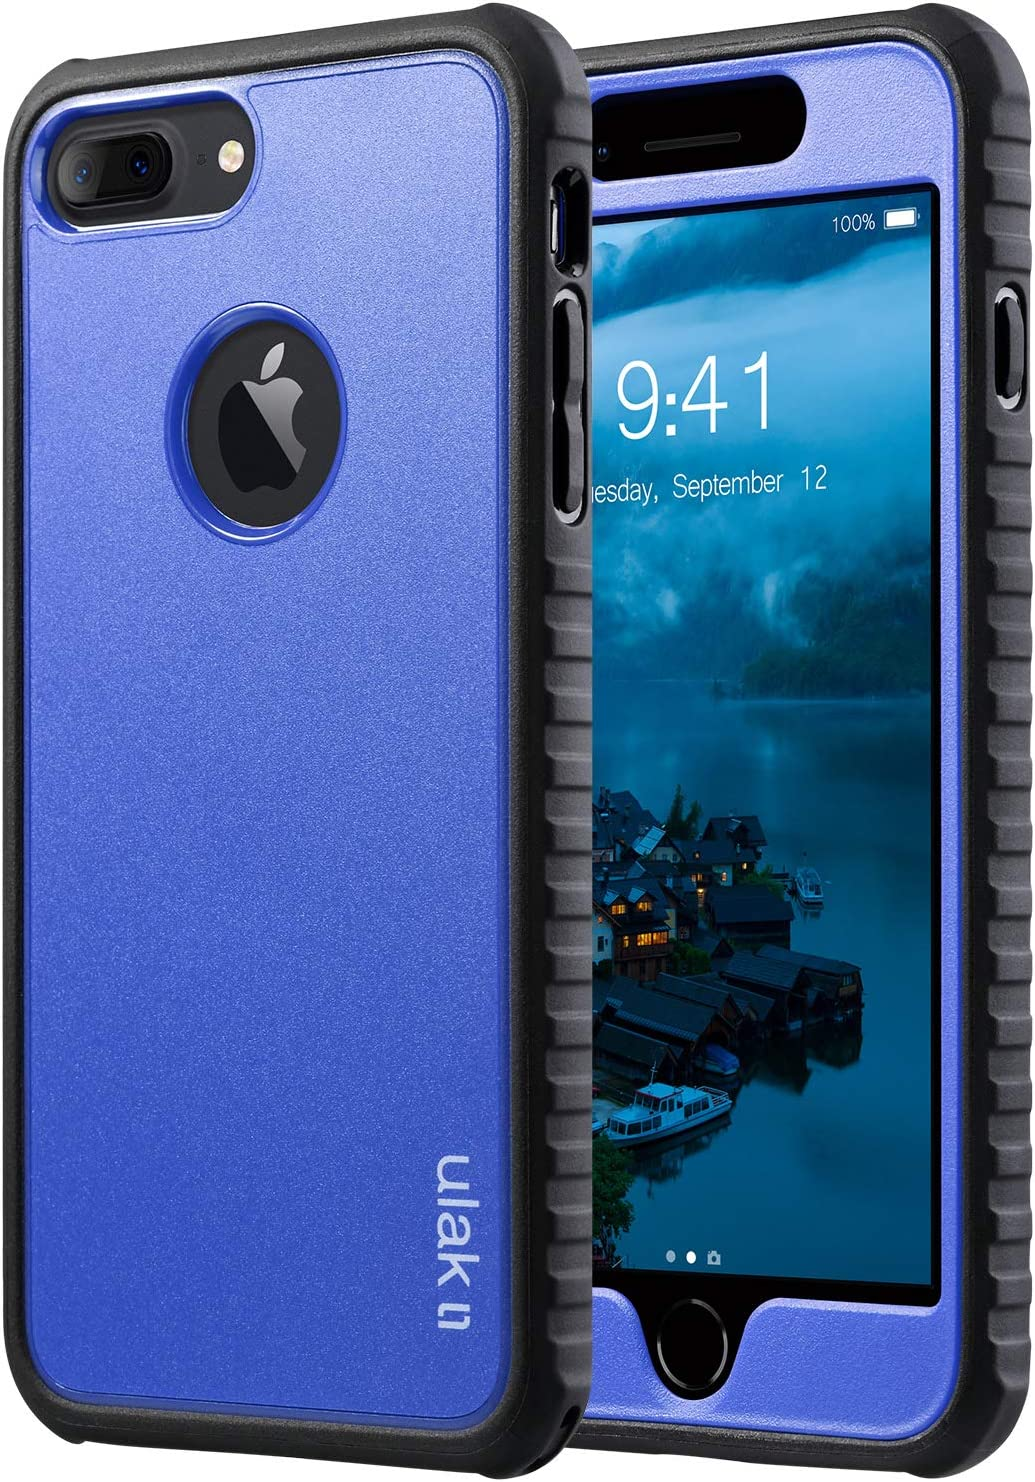 ULAK iPhone 7 Plus Case, Slim Lightweight Flexible TPU Bumper Case Shockproof Anti-Slip Front and Back Protection Durable Rugged Cover for Apple iPhone 7 Plus 5.5 inch, Navy Blue